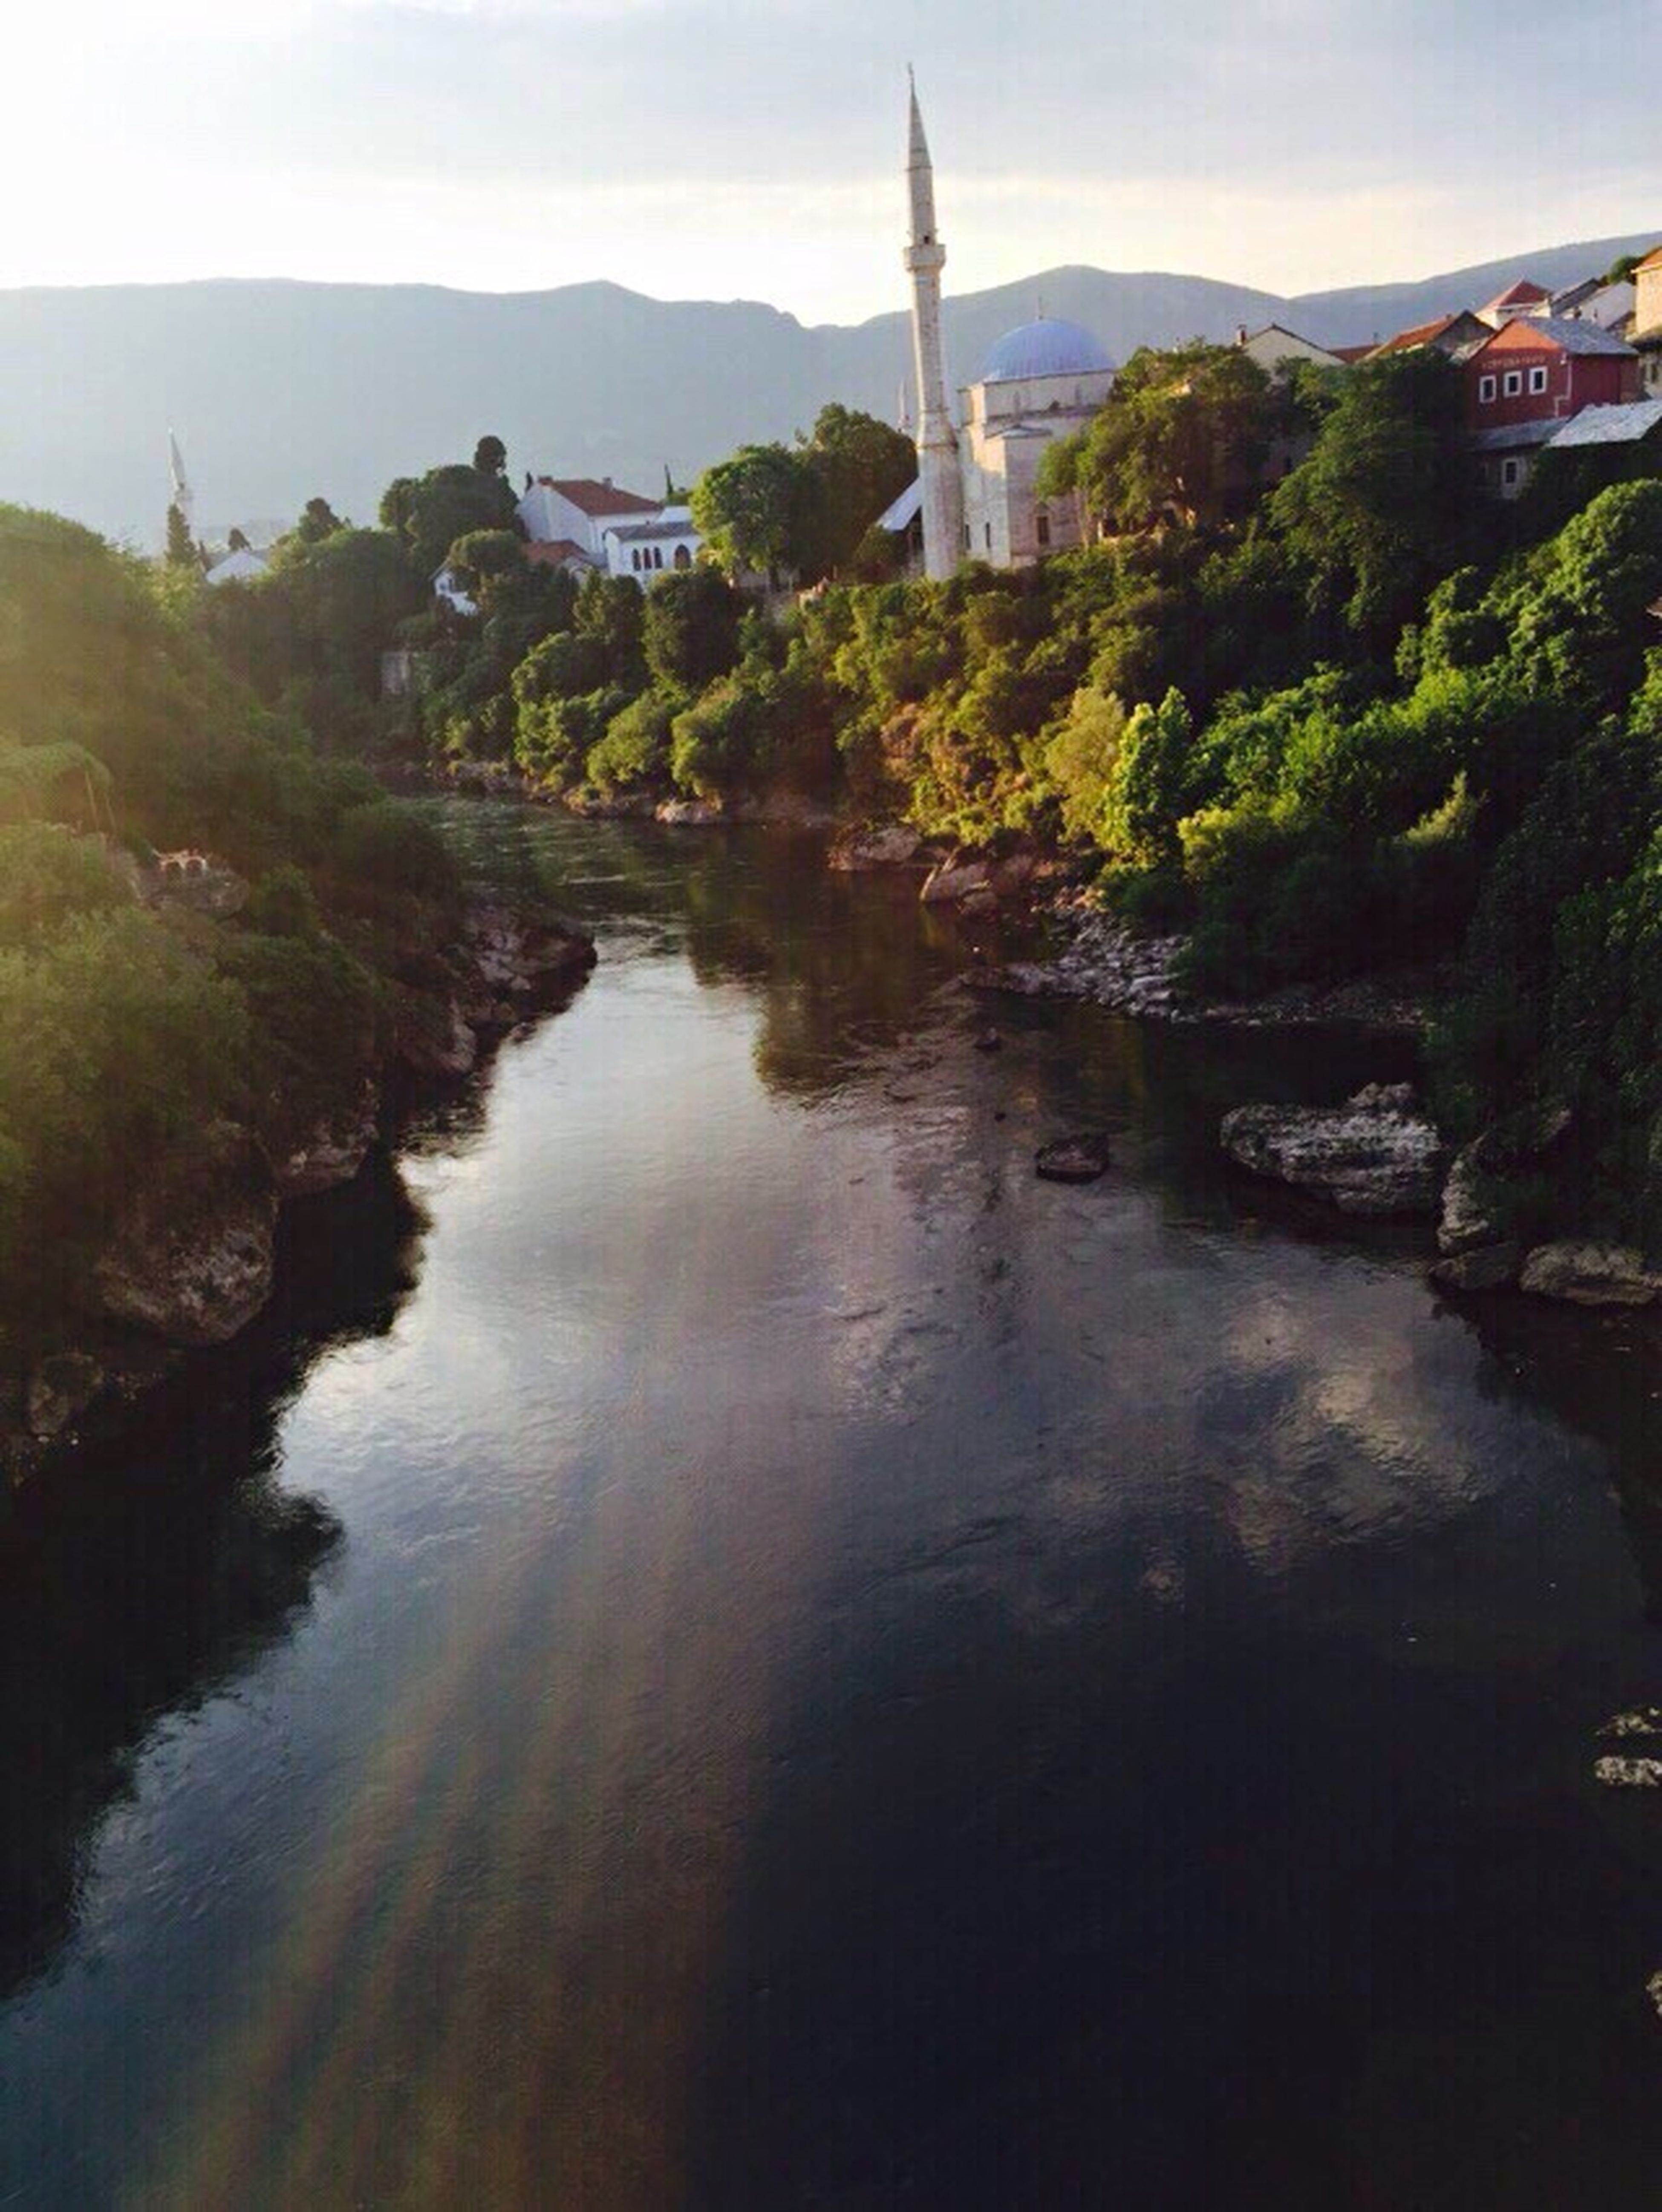 Water Architecture River Building Exterior Waterfront Mountain Rural Scene Tranquil Scene Tranquility Sky Mostar Bosnia Nature Riverbank Agriculture Scenics Day Alternative Energy Beauty In Nature Windmill Non-urban Scene